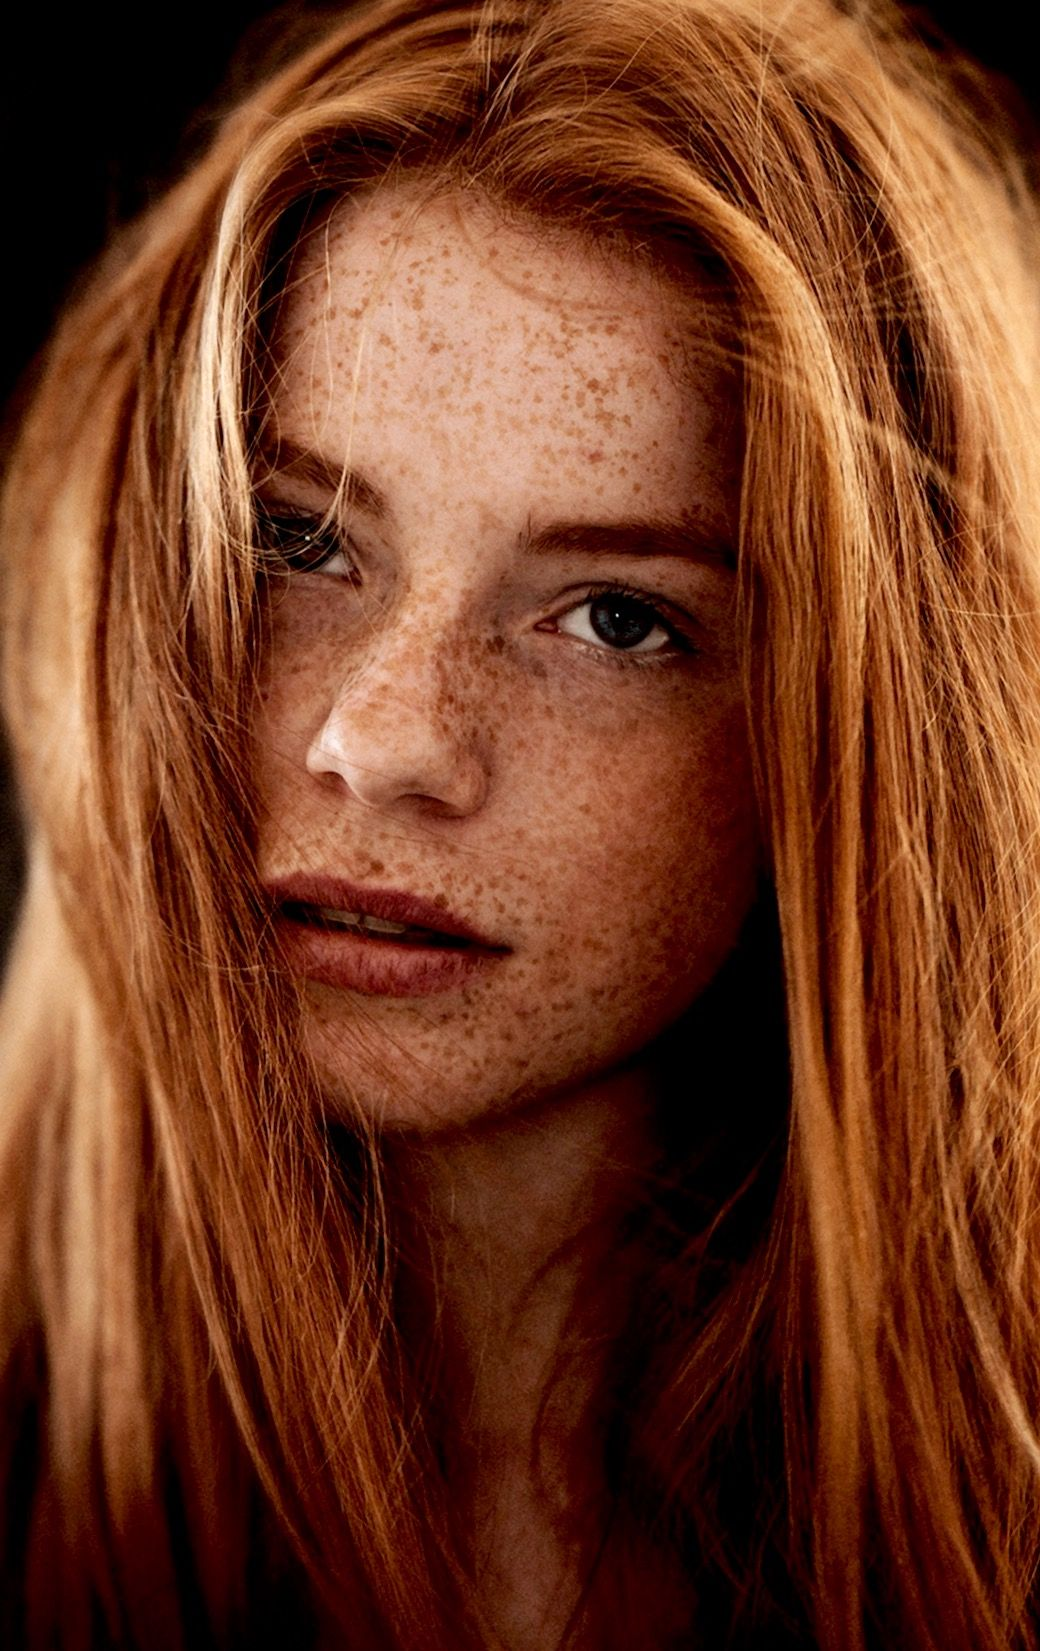 What a gorgeous young woman she is! The freckles are only